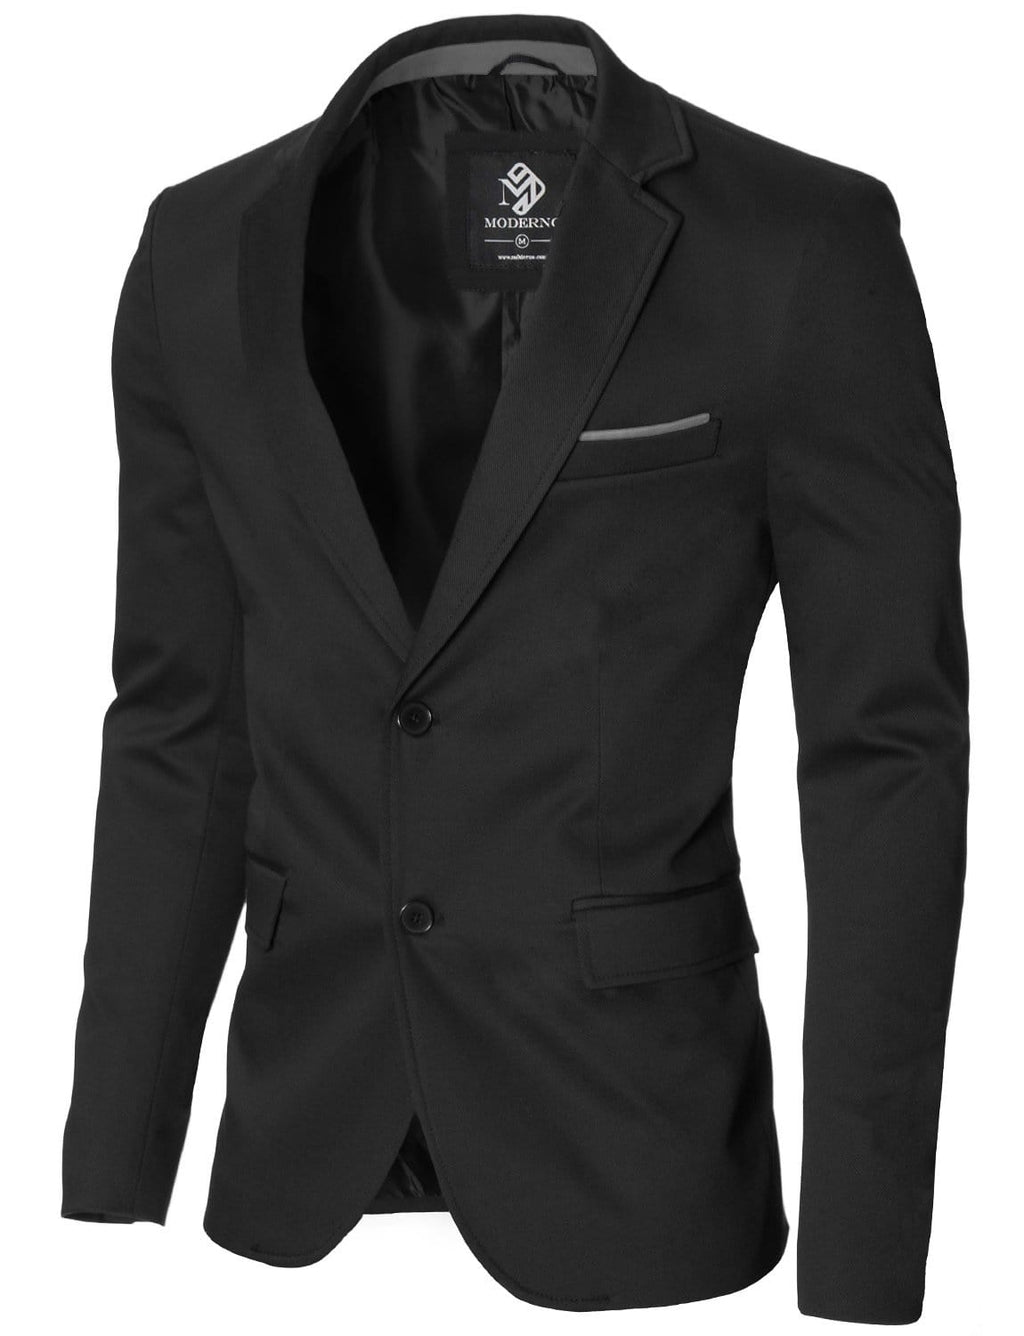 Mens slim fit 2 buttons cotton blazer sport coat black (MOD14517B)